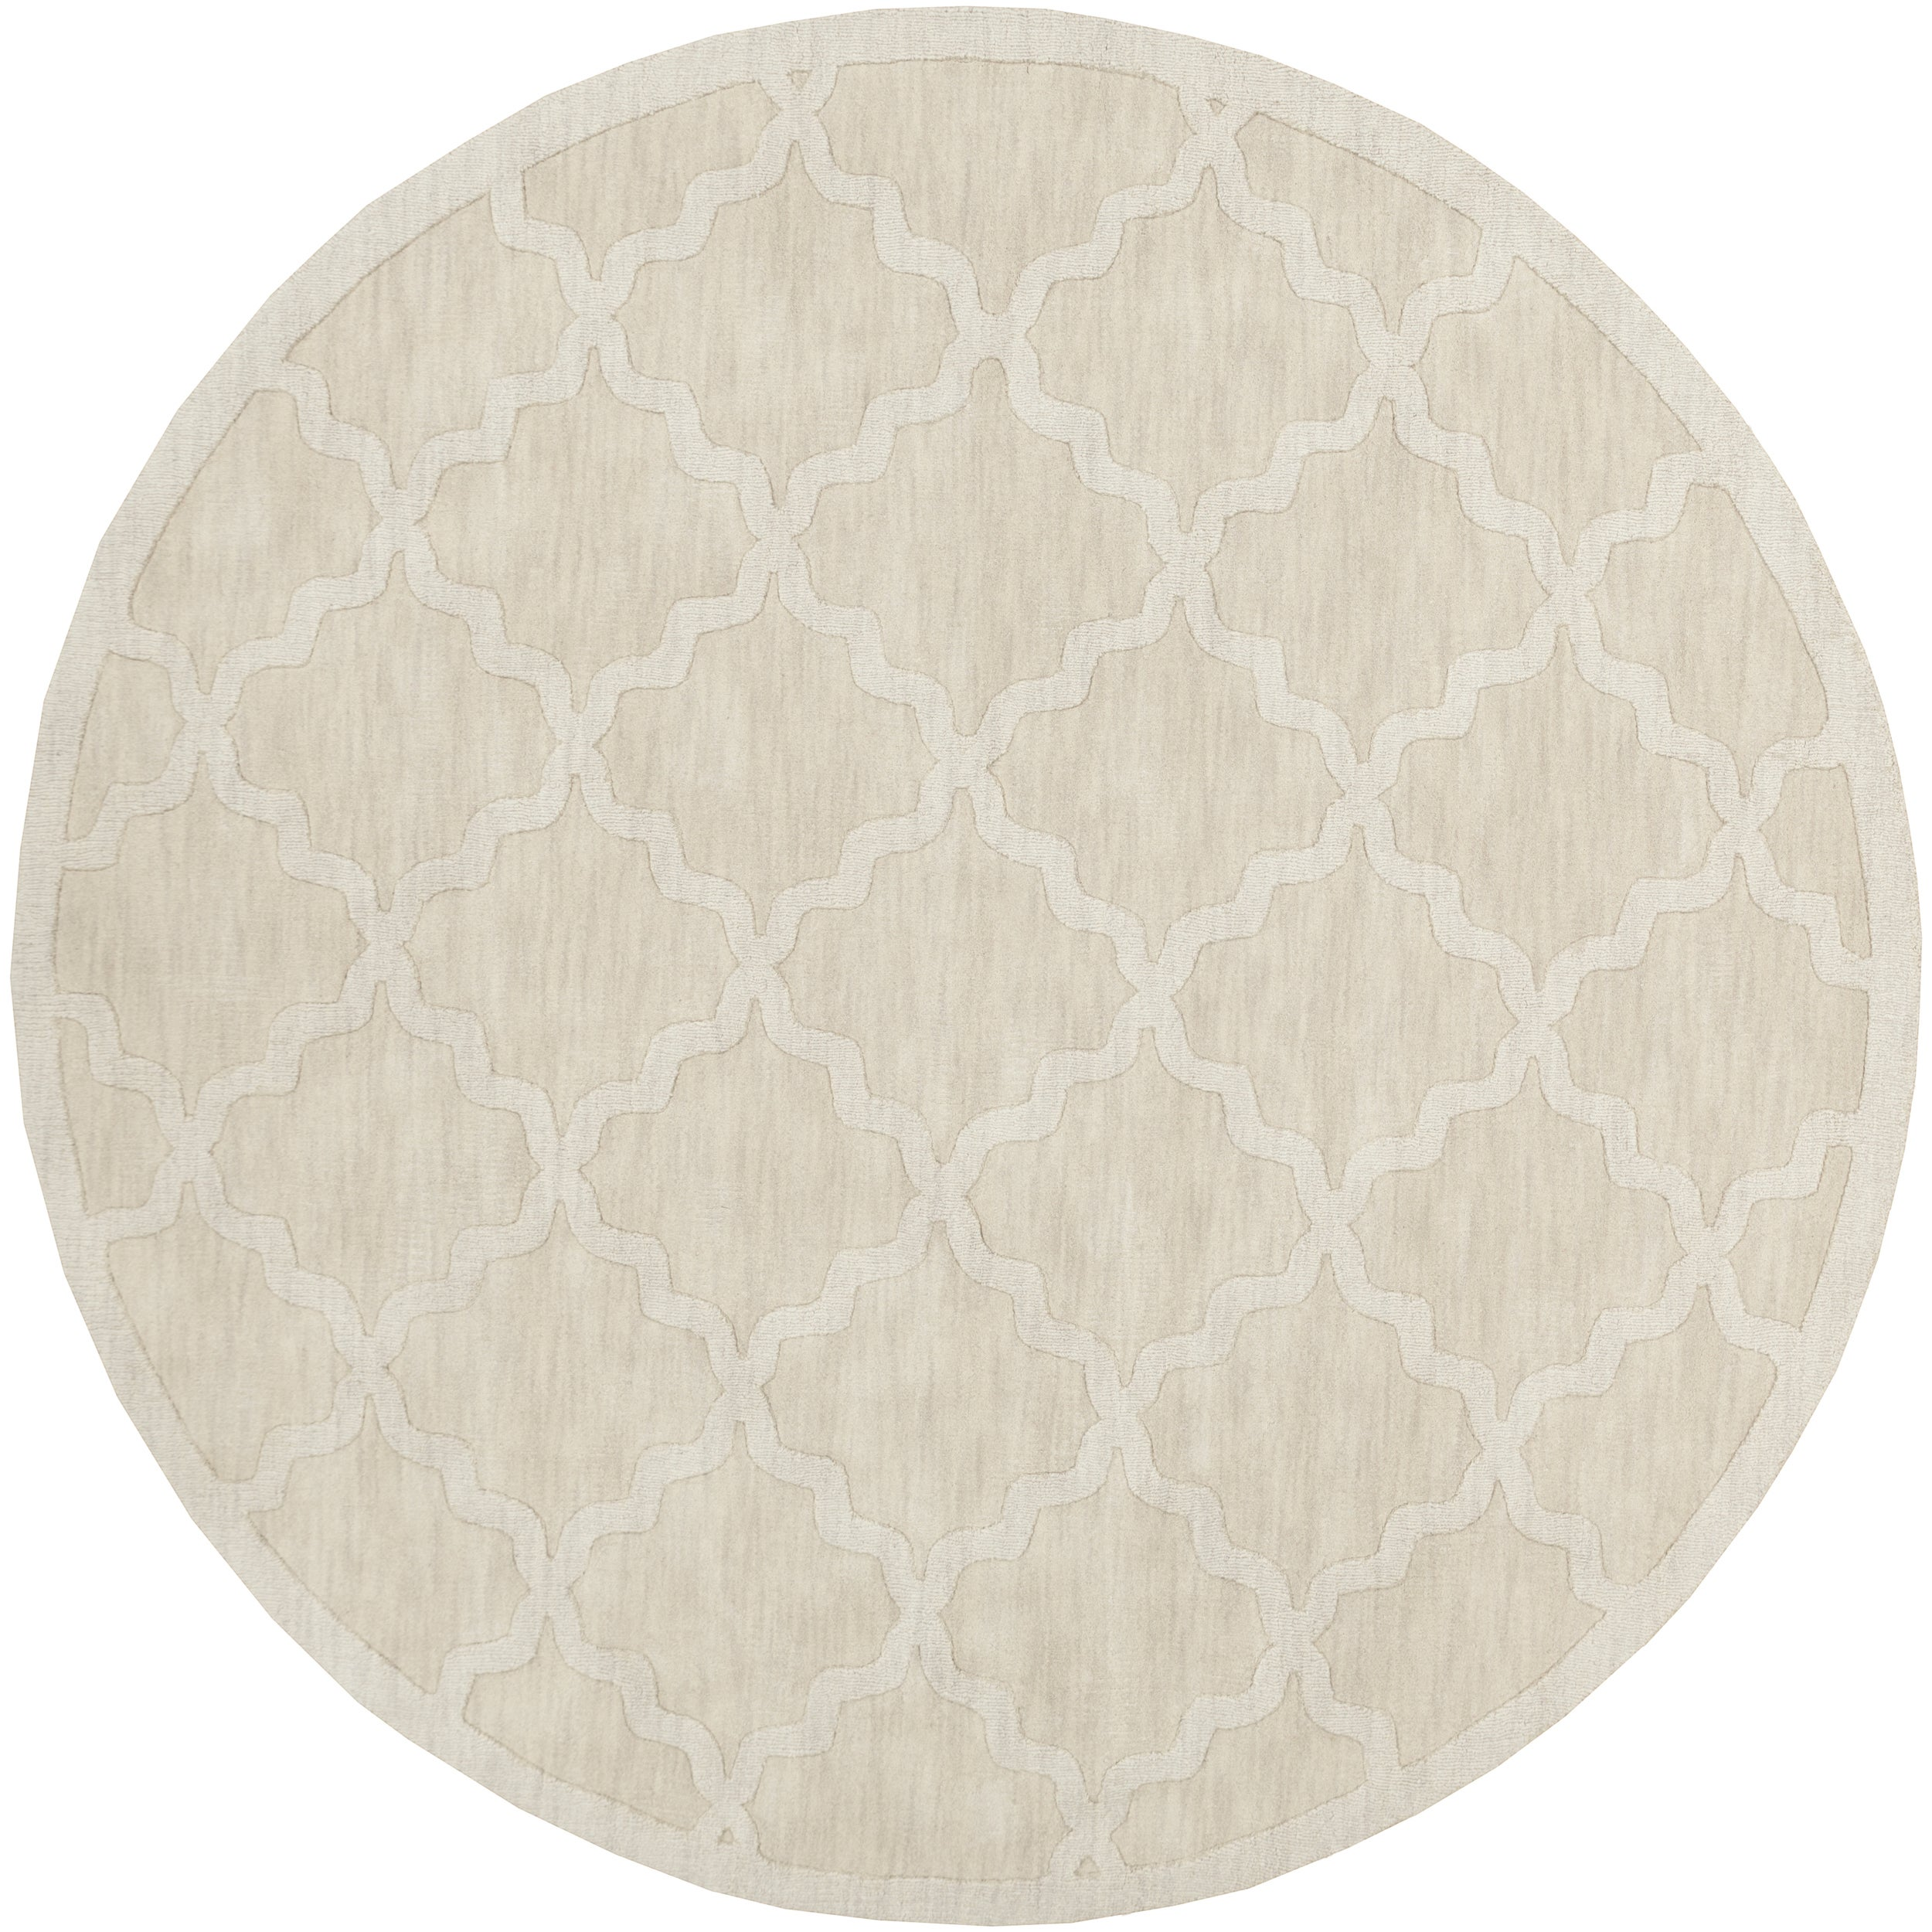 Artistic Weavers Hand-woven Amy Tone-on-Tone Lattice Wool Area Rug-(93 inch round) at Sears.com